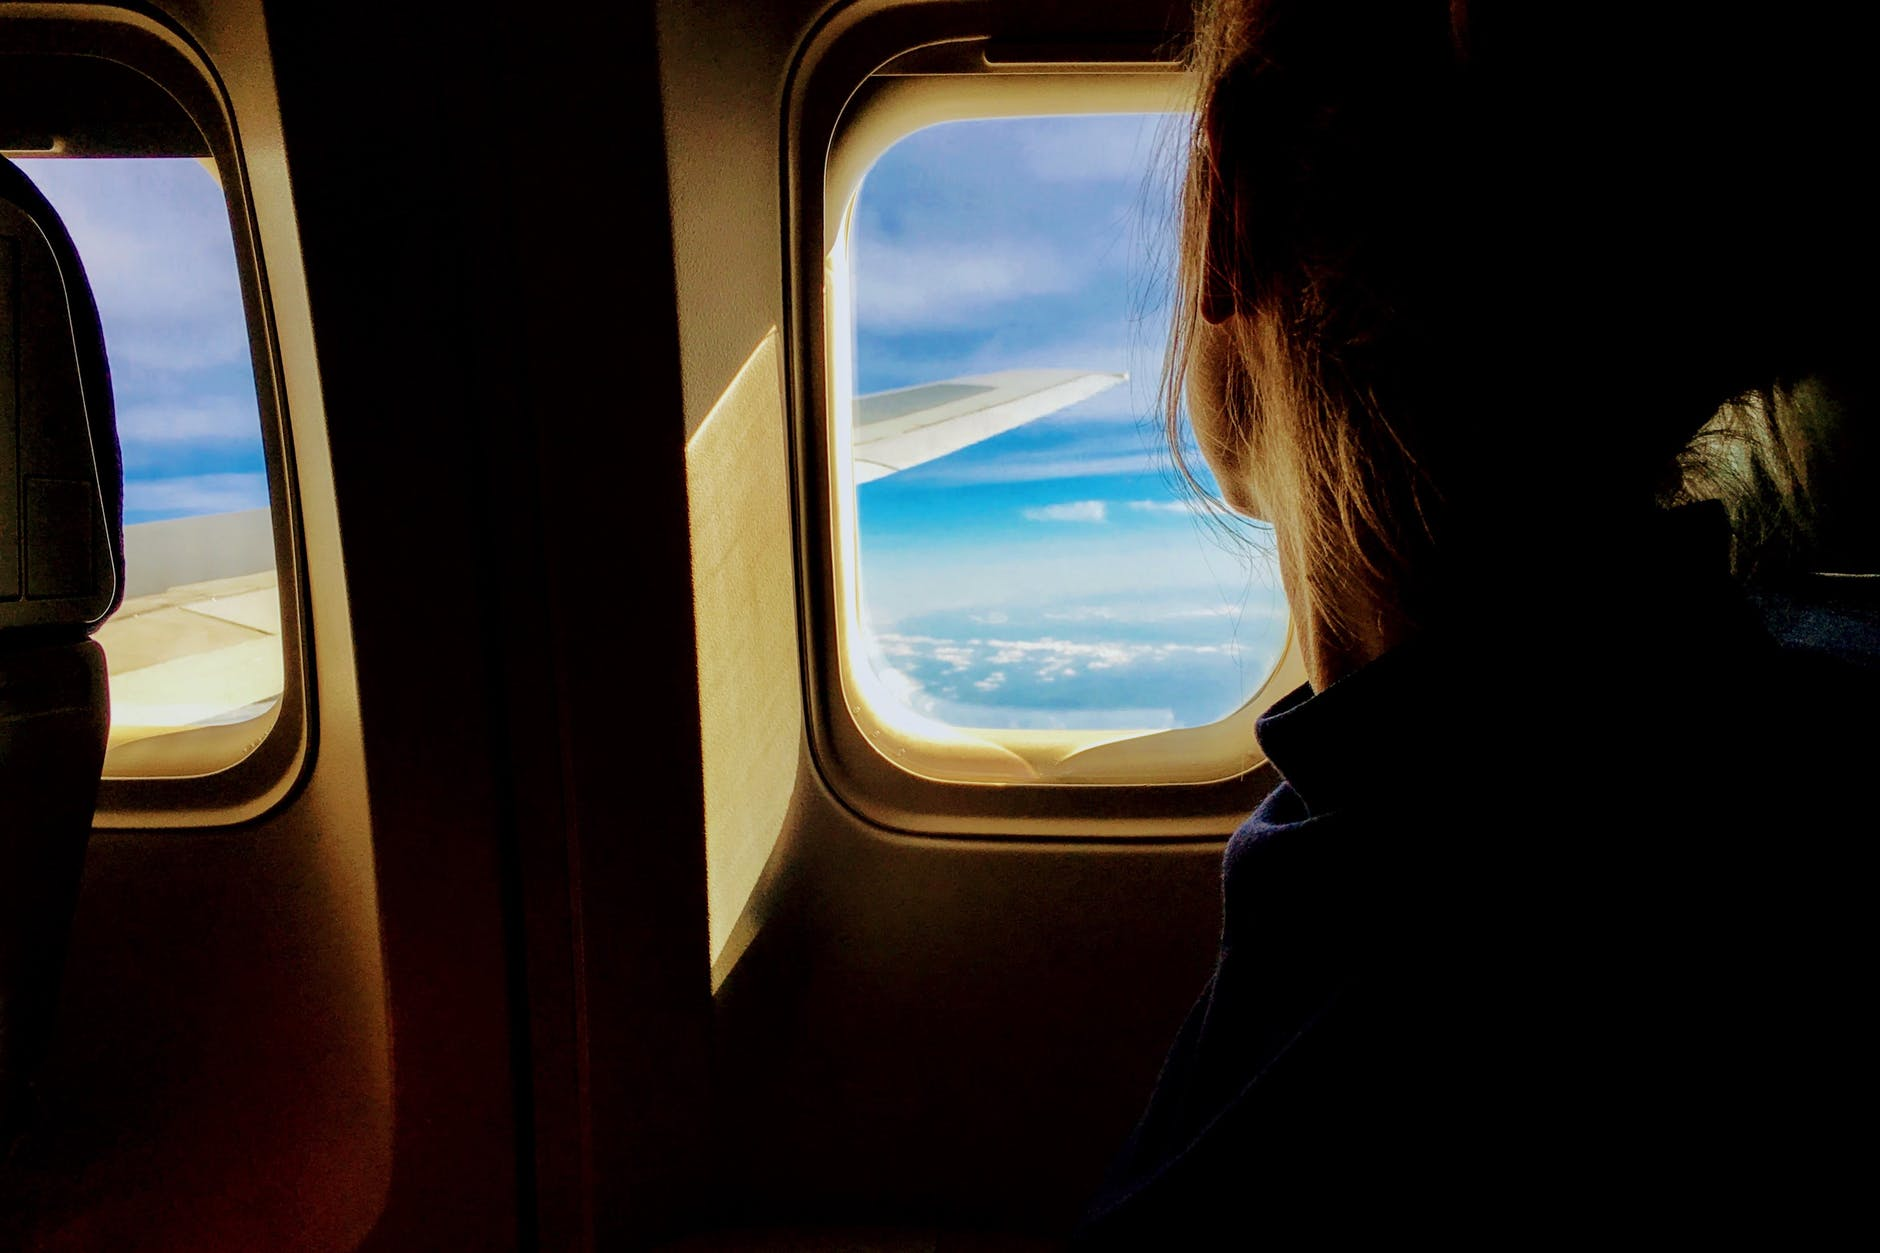 You should seek for the travel agency before flight begins